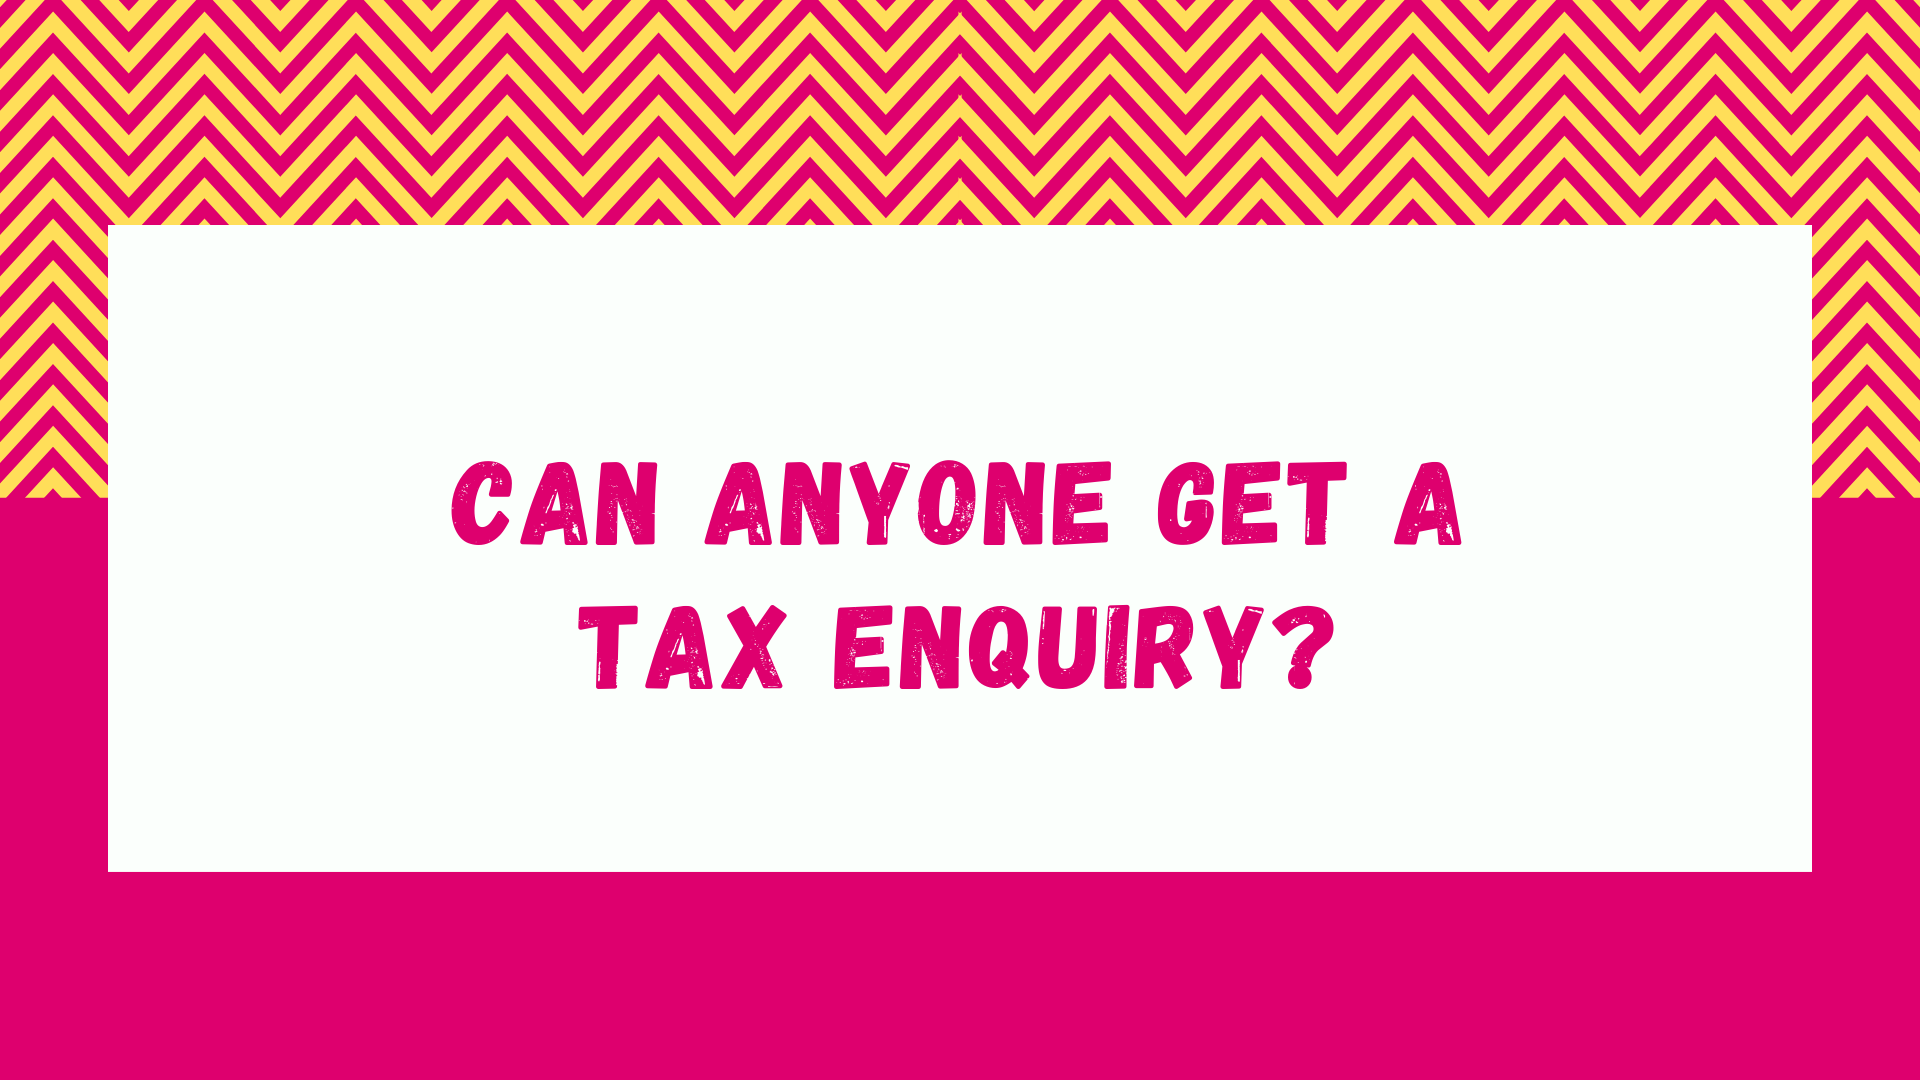 Can anyone get a tax enquiry?